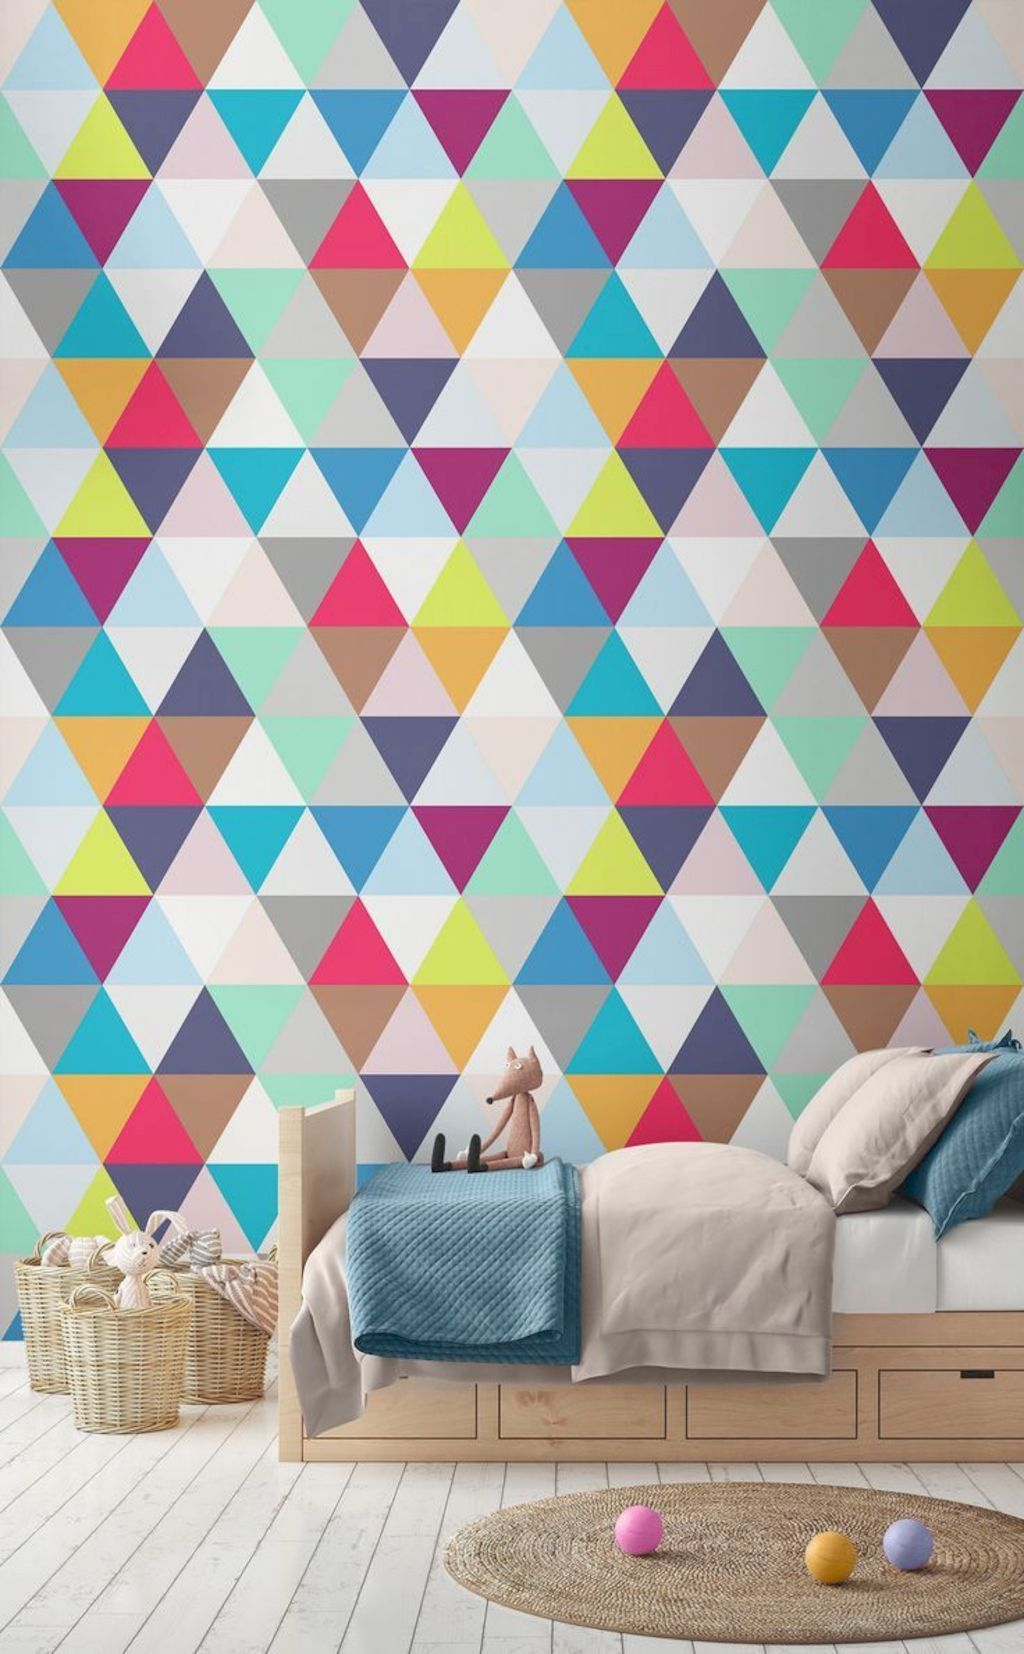 Kids Room Wallpaper Designs: Aesthetic Kid Rooms With Geometric Wall Themes